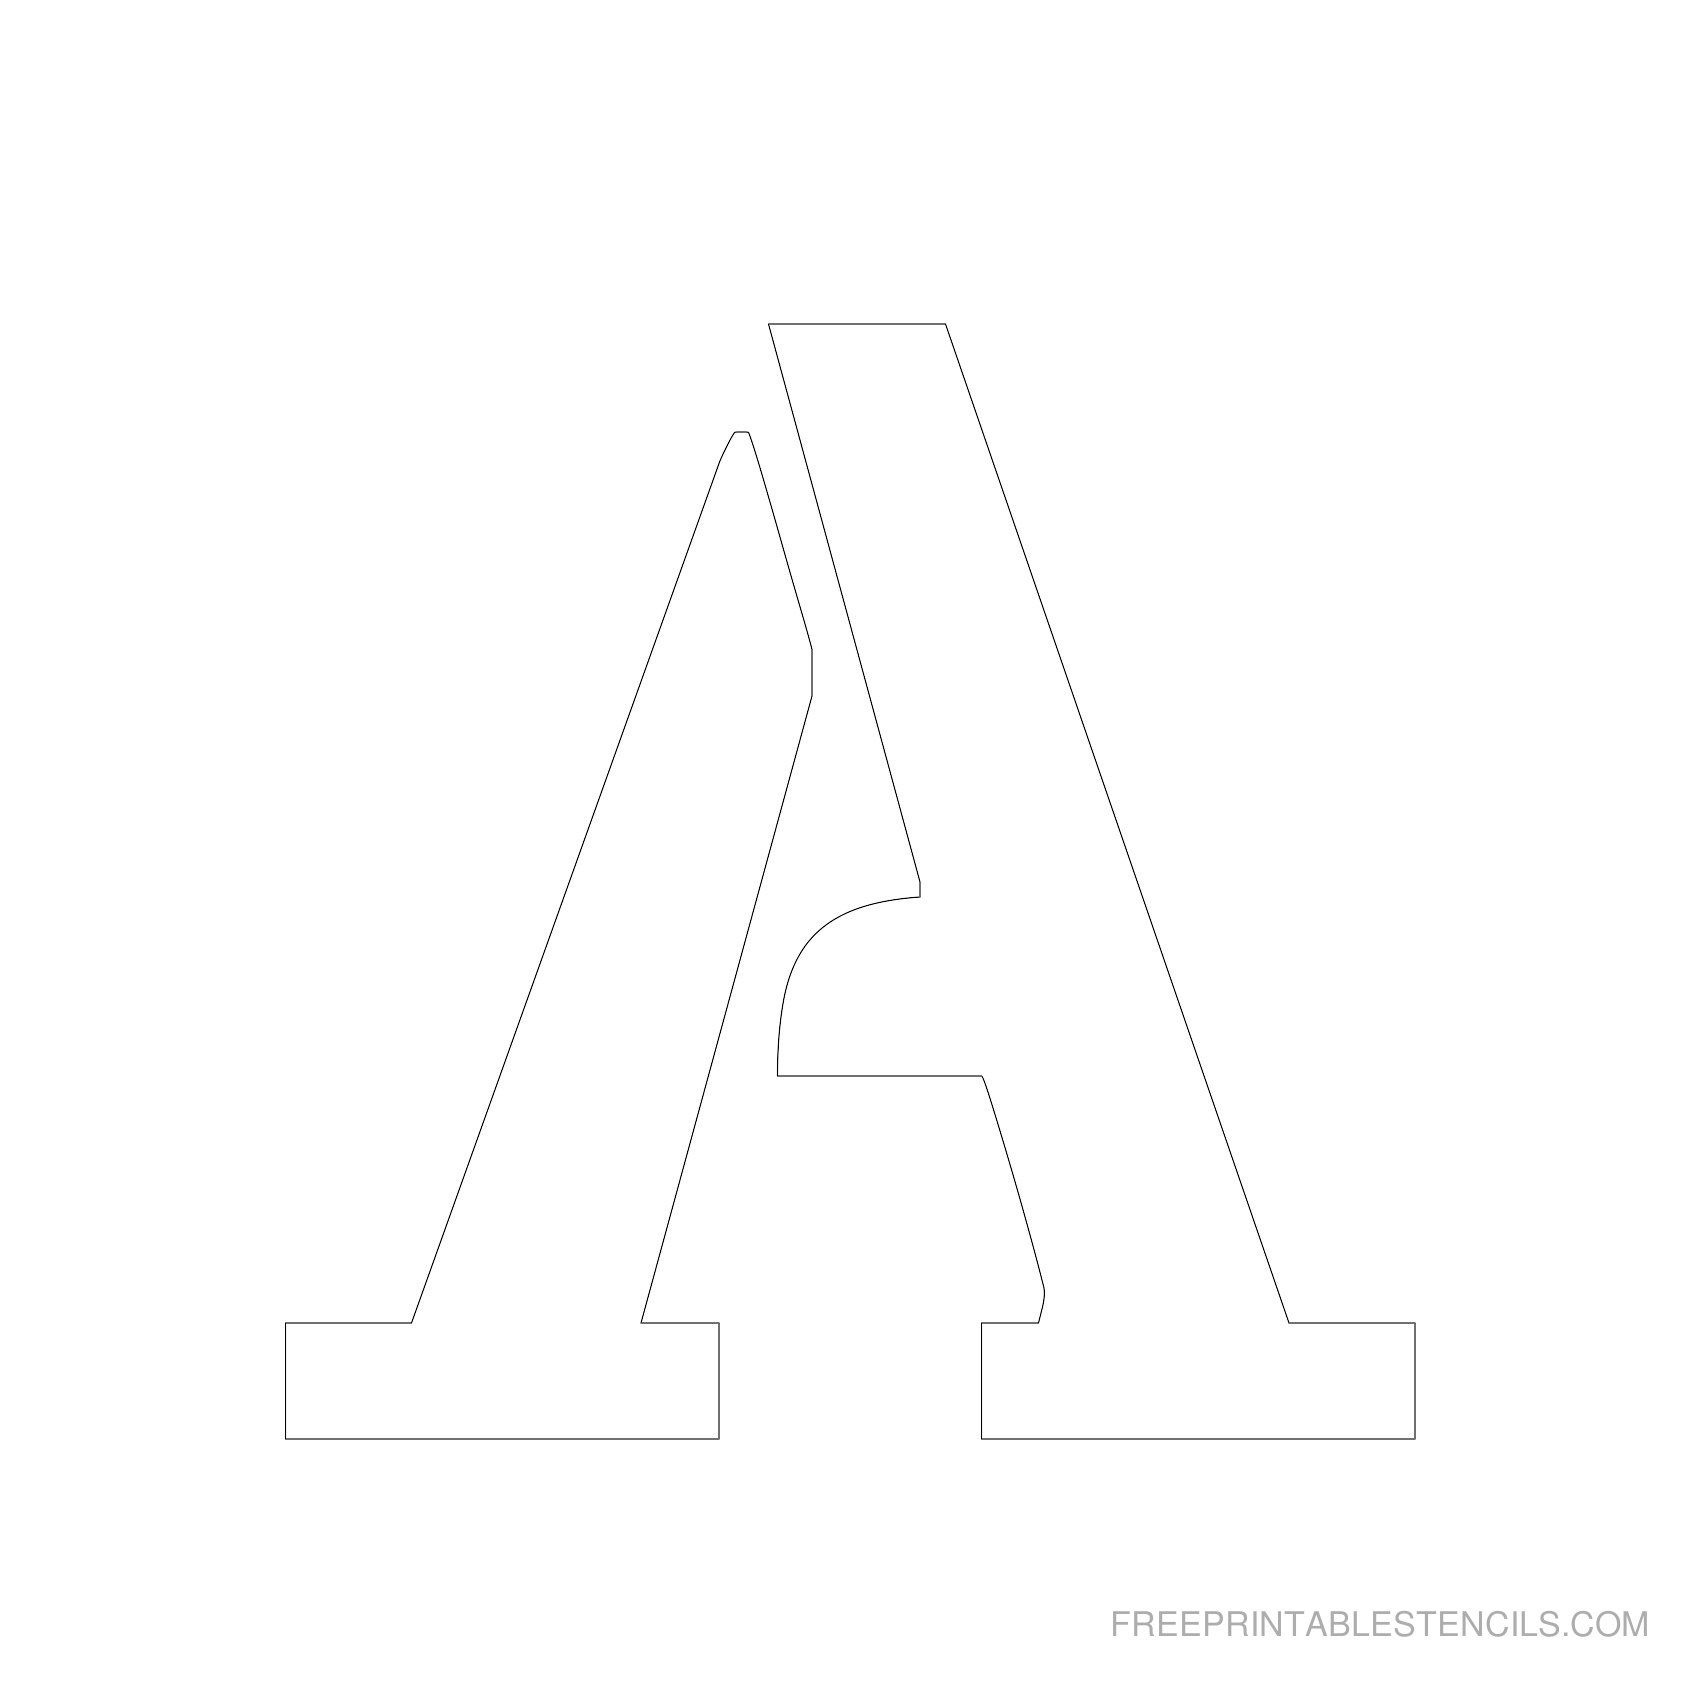 Printable 5 Inch Letter Stencil A Other Stencils As Well | Arts And - Free Printable 5 Inch Number Stencils